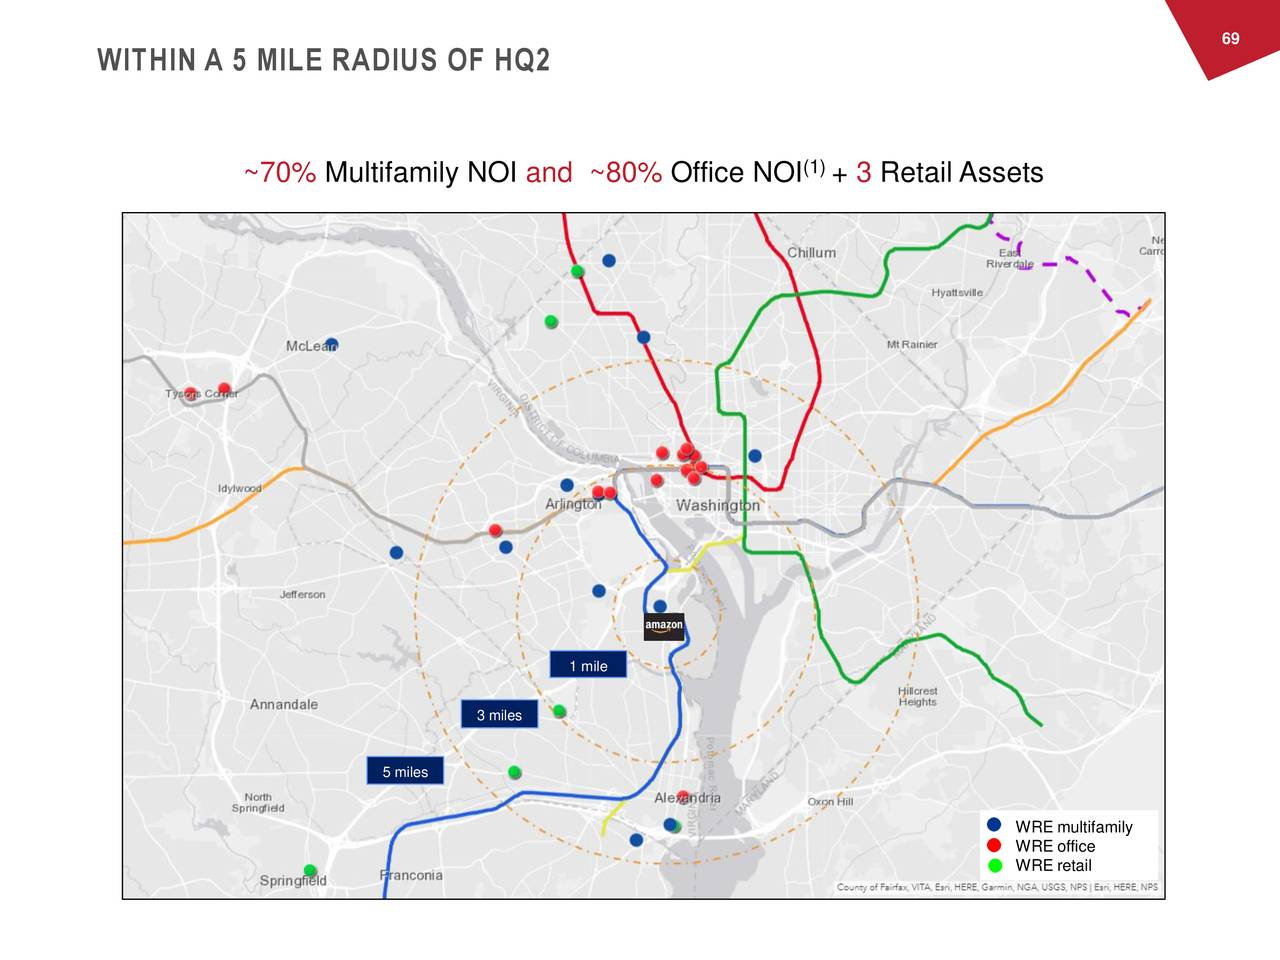 WITHIN A 5 MILE RADIUS OF HQ2 ~70% Multifamily NOI and ~80% Office NOI (1)+ 3 Retail Assets 1 mile 3 miles 5 miles WRE multifamily WRE office WRE retail